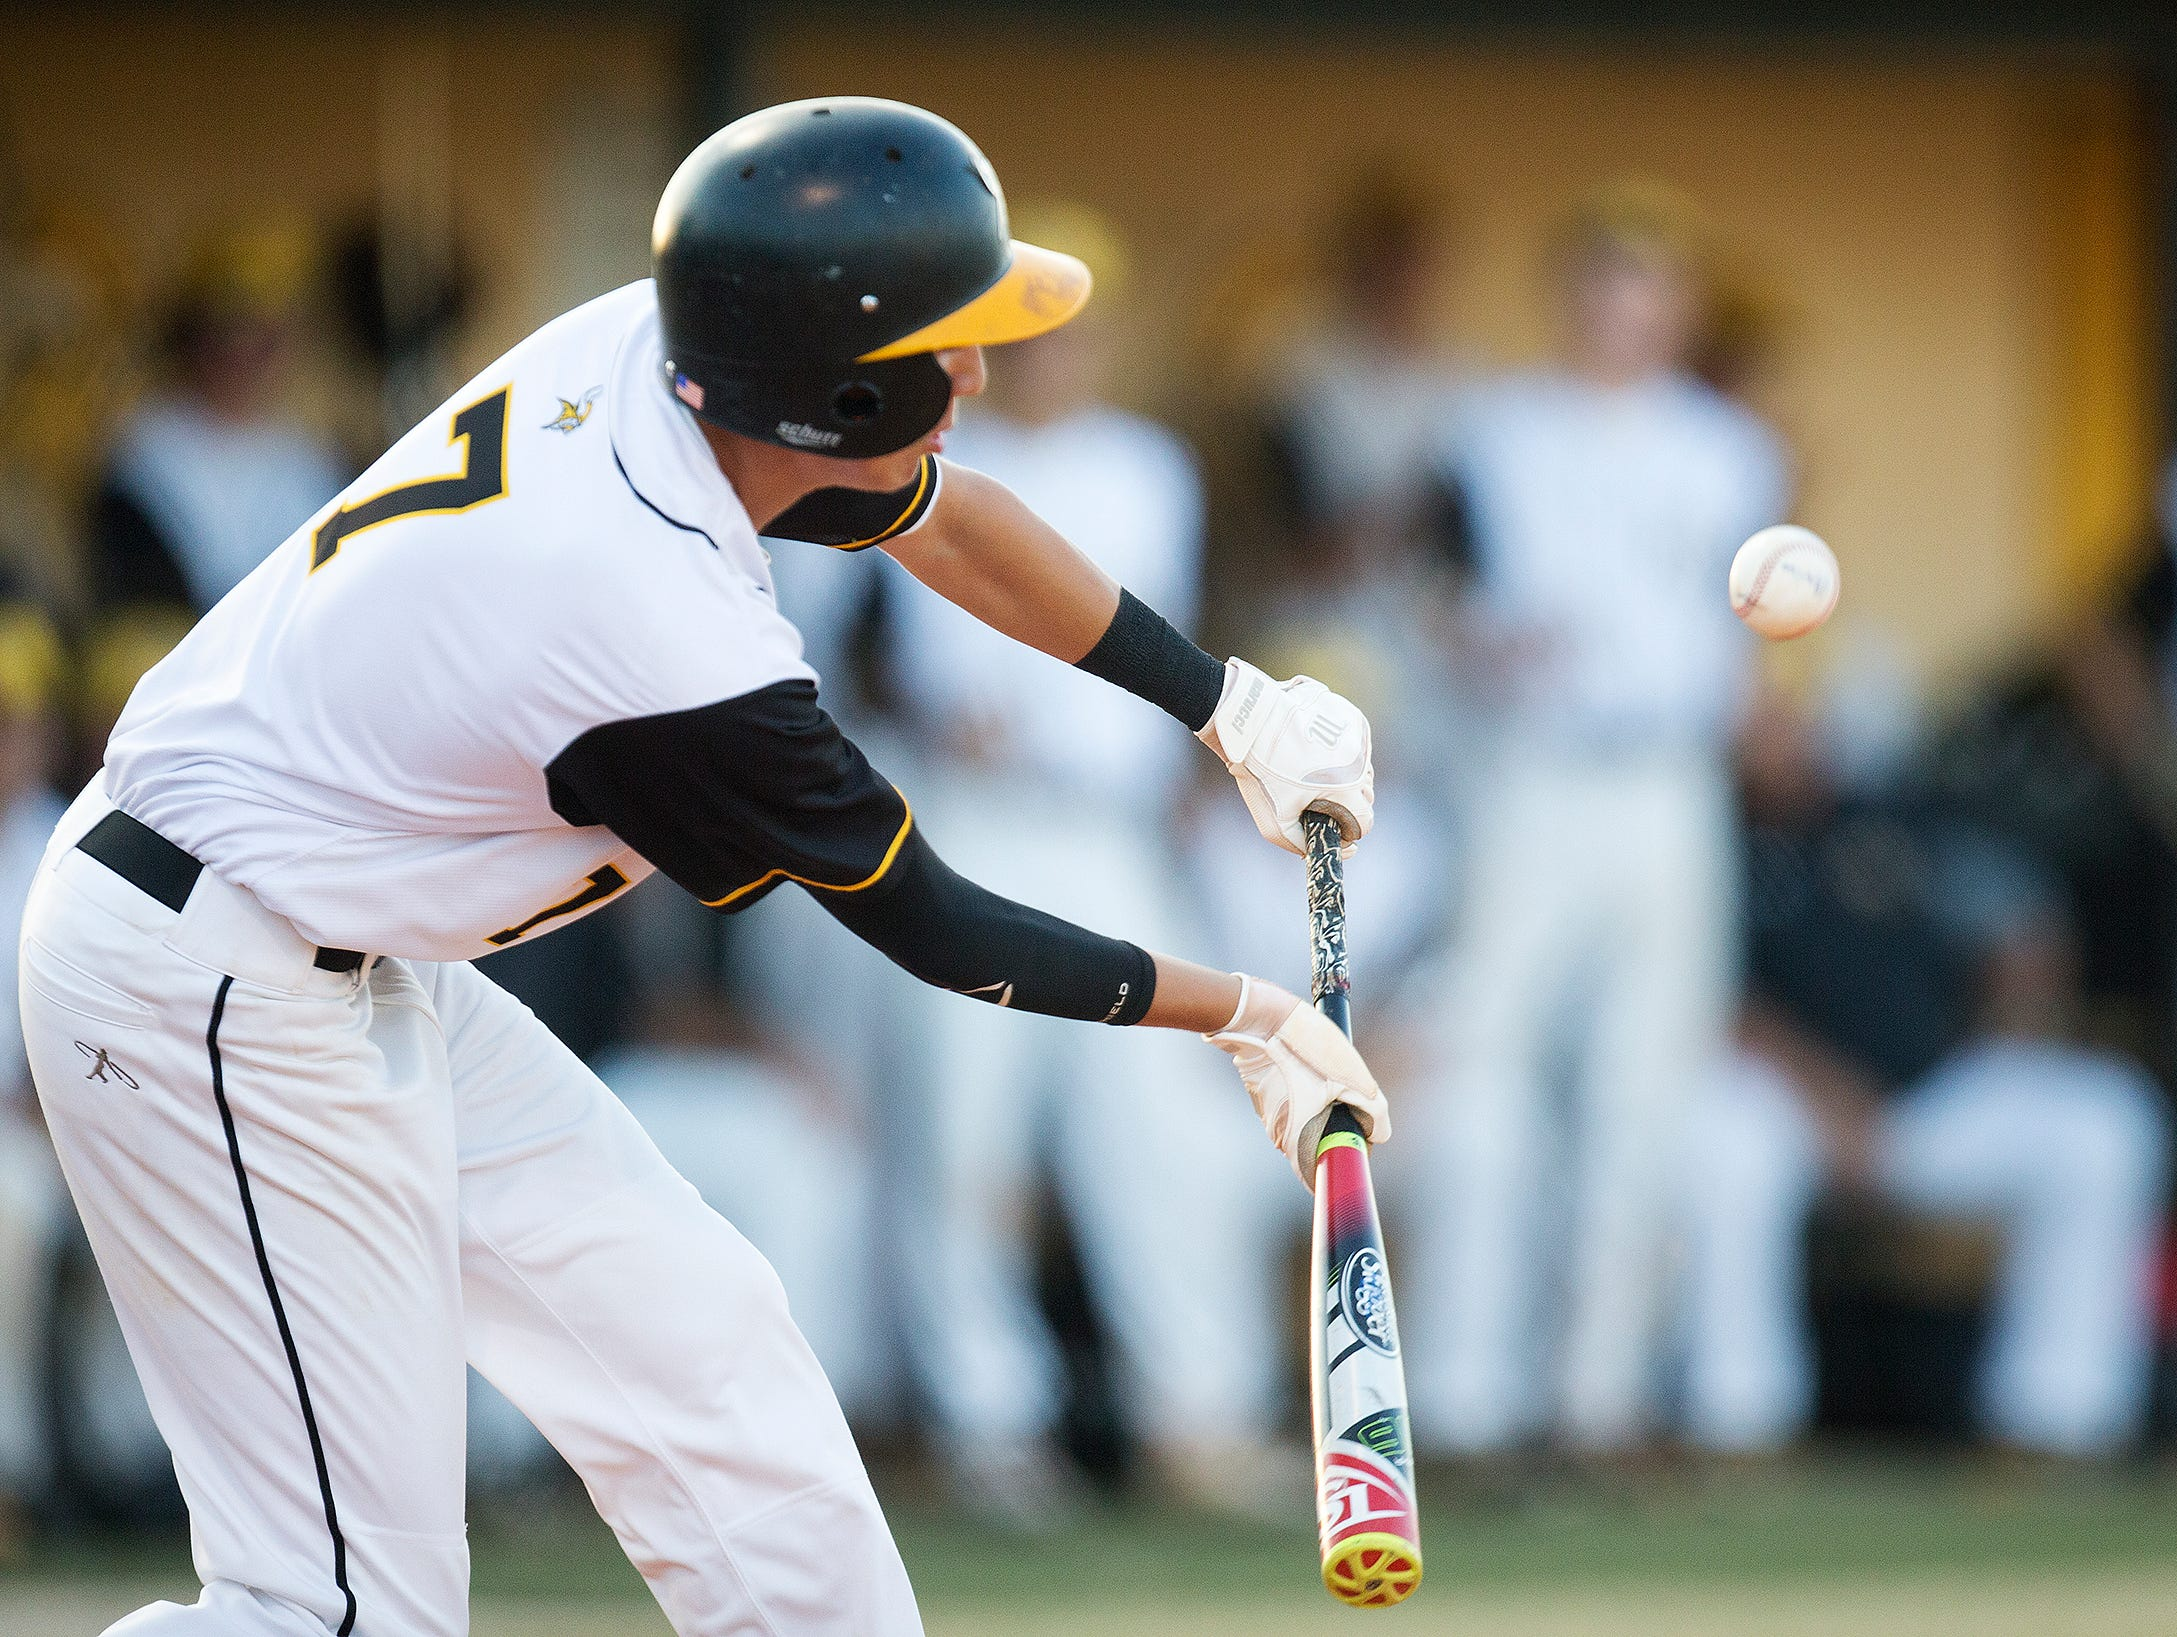 Bishop Verot's Alex Irwin bunts against Cardinal Mooney in District 4A-5 baseball championship Friday at Bishop Verot High School in Fort Myers.